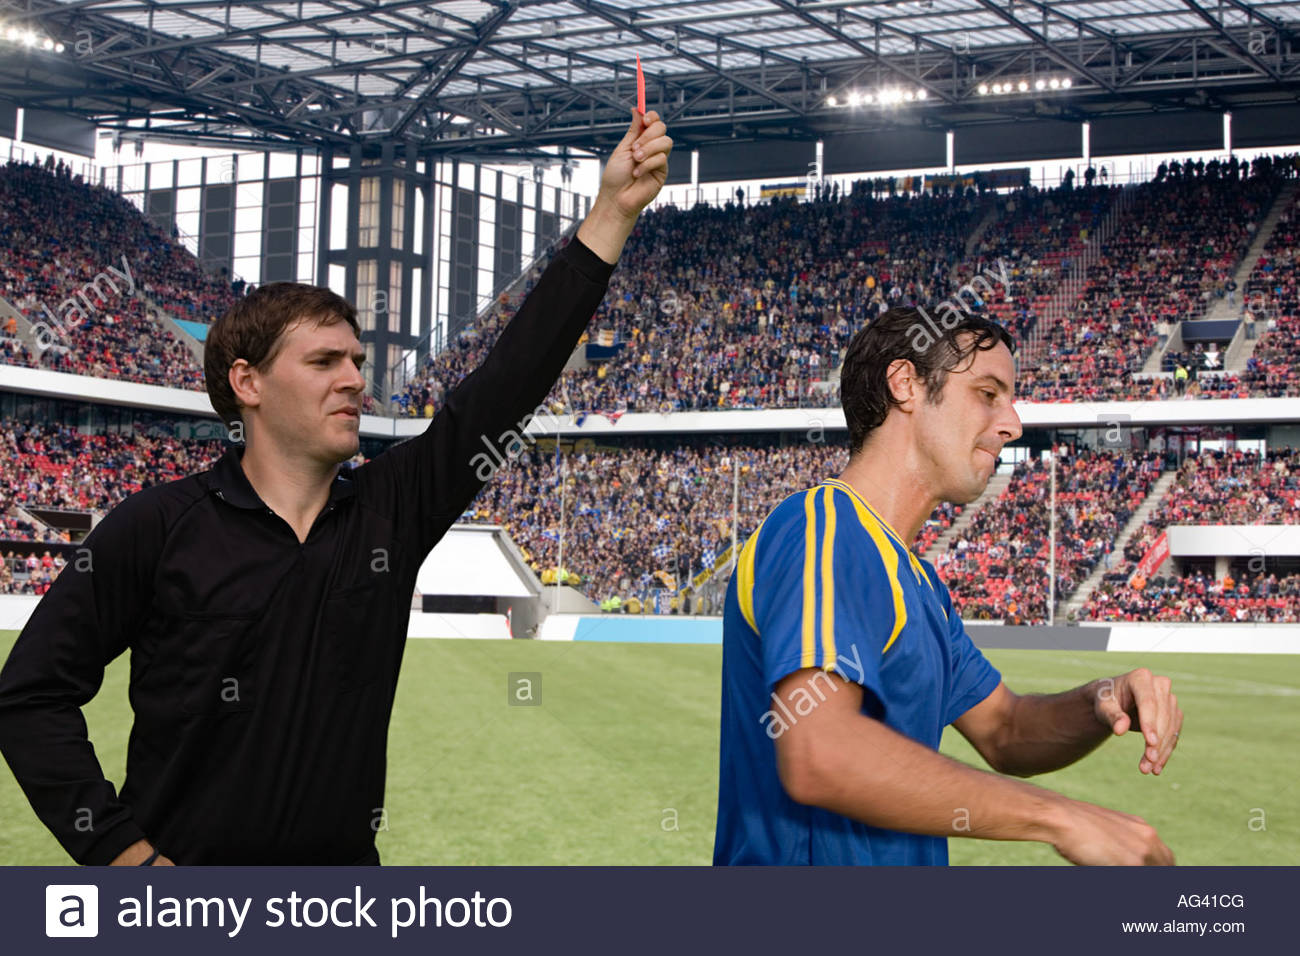 Referee giving a footballer a red card - Stock Image